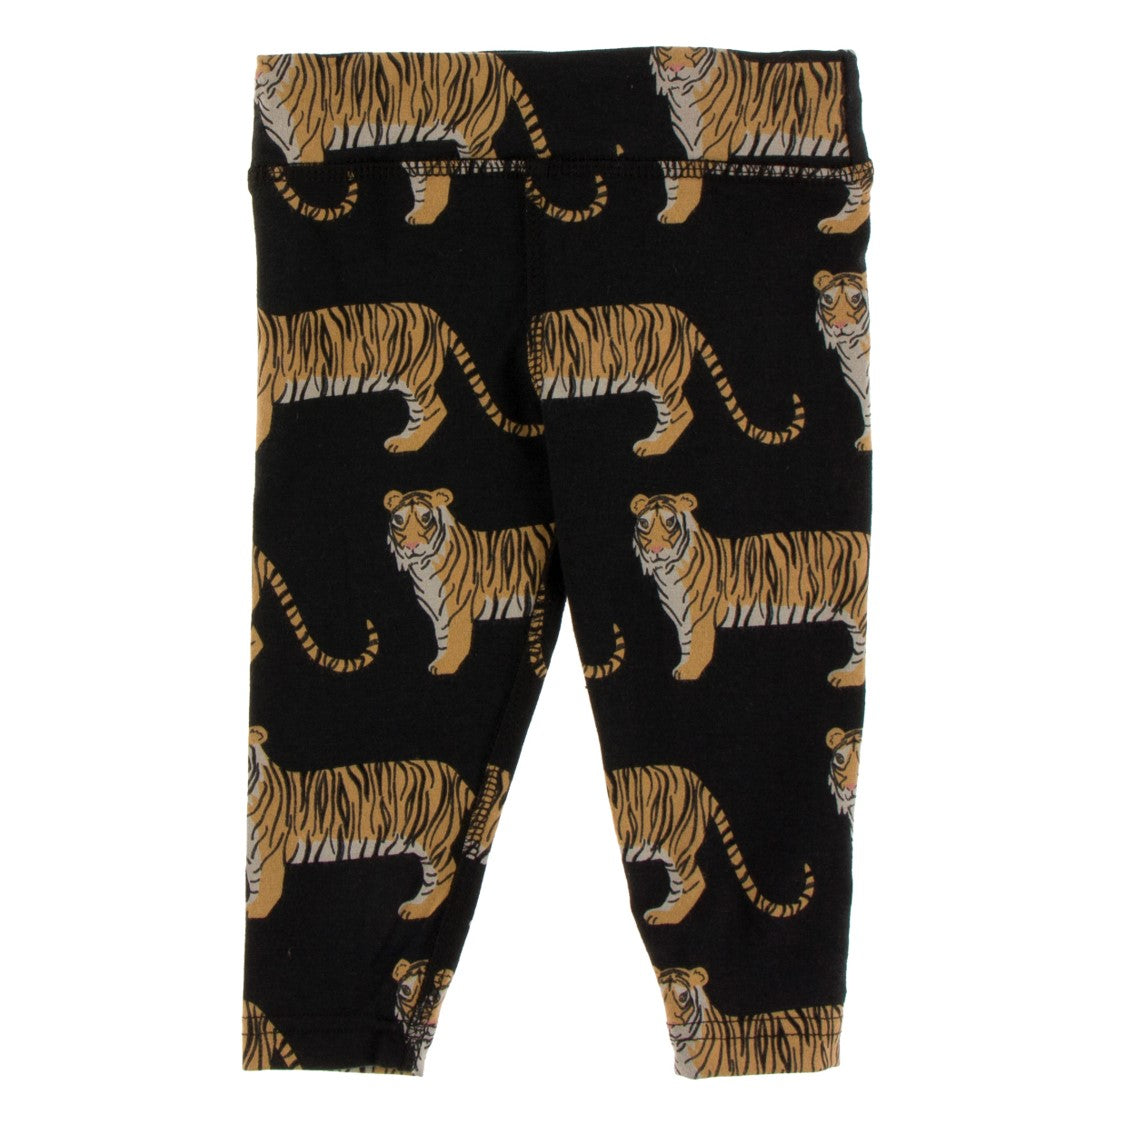 Kickee Pants - India Collection - Performance Jersey Legging – Zebra Tiger